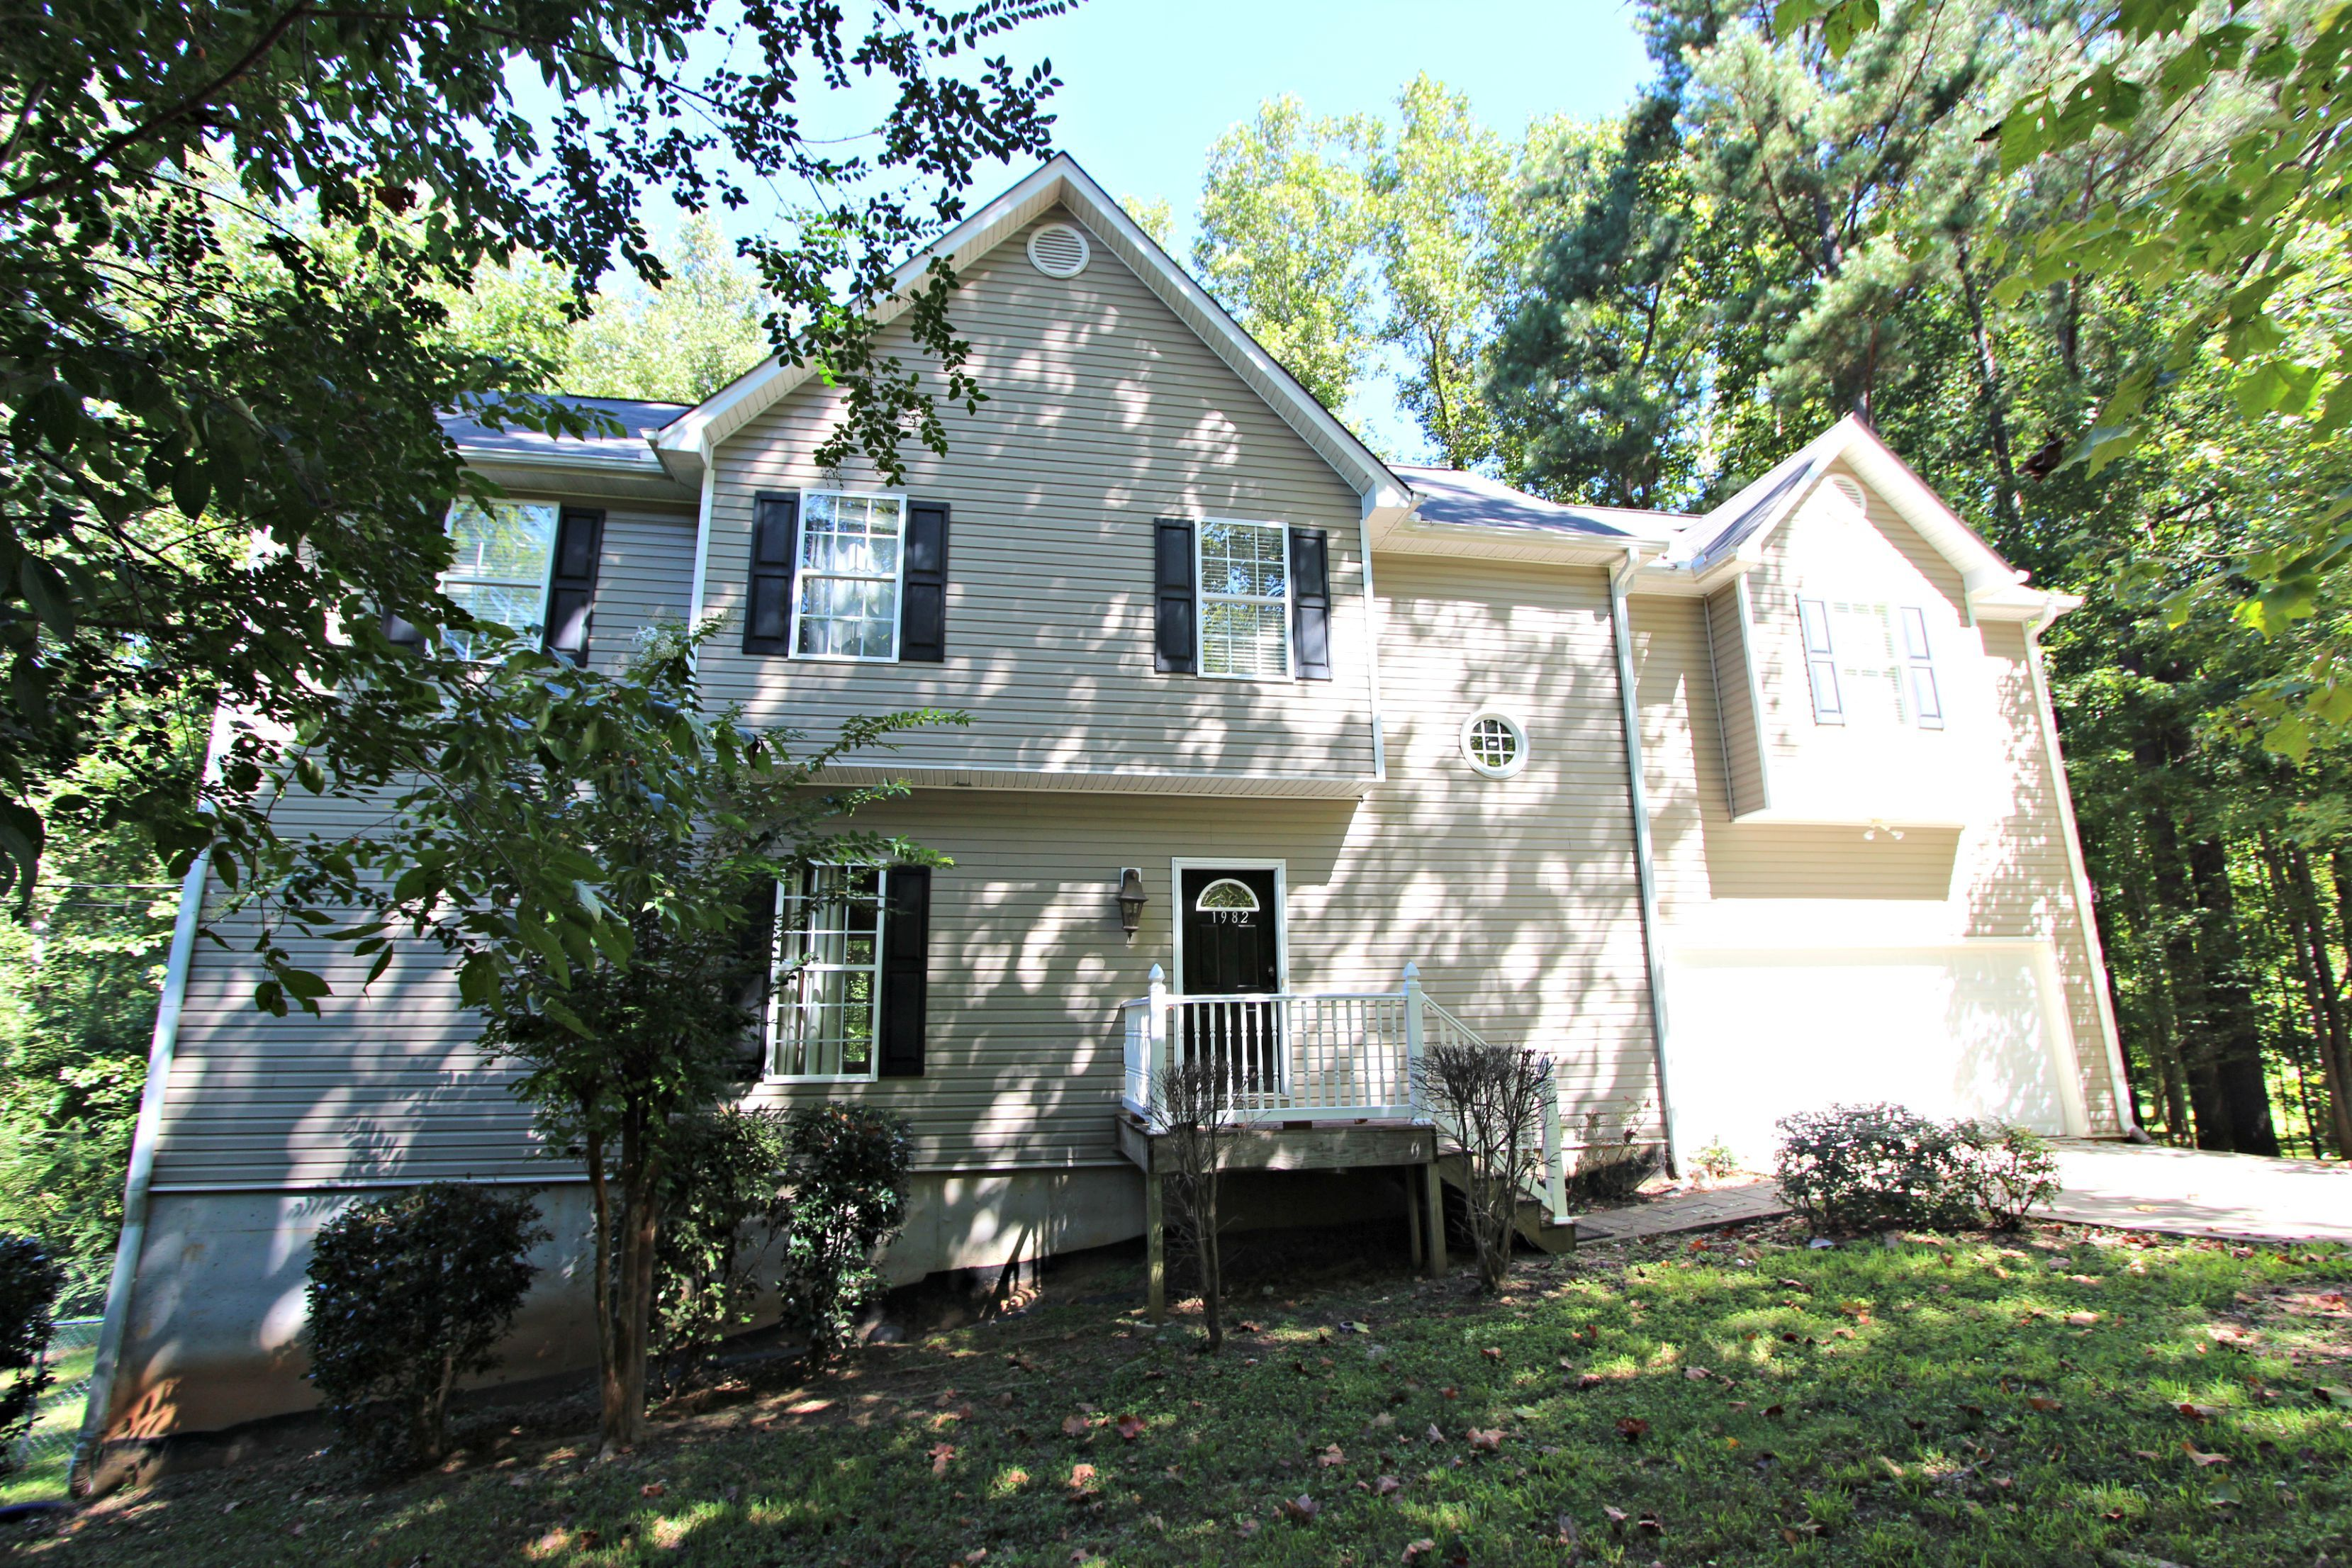 1982-tanglewood-drive-snellville-ga-30078 home for sale in